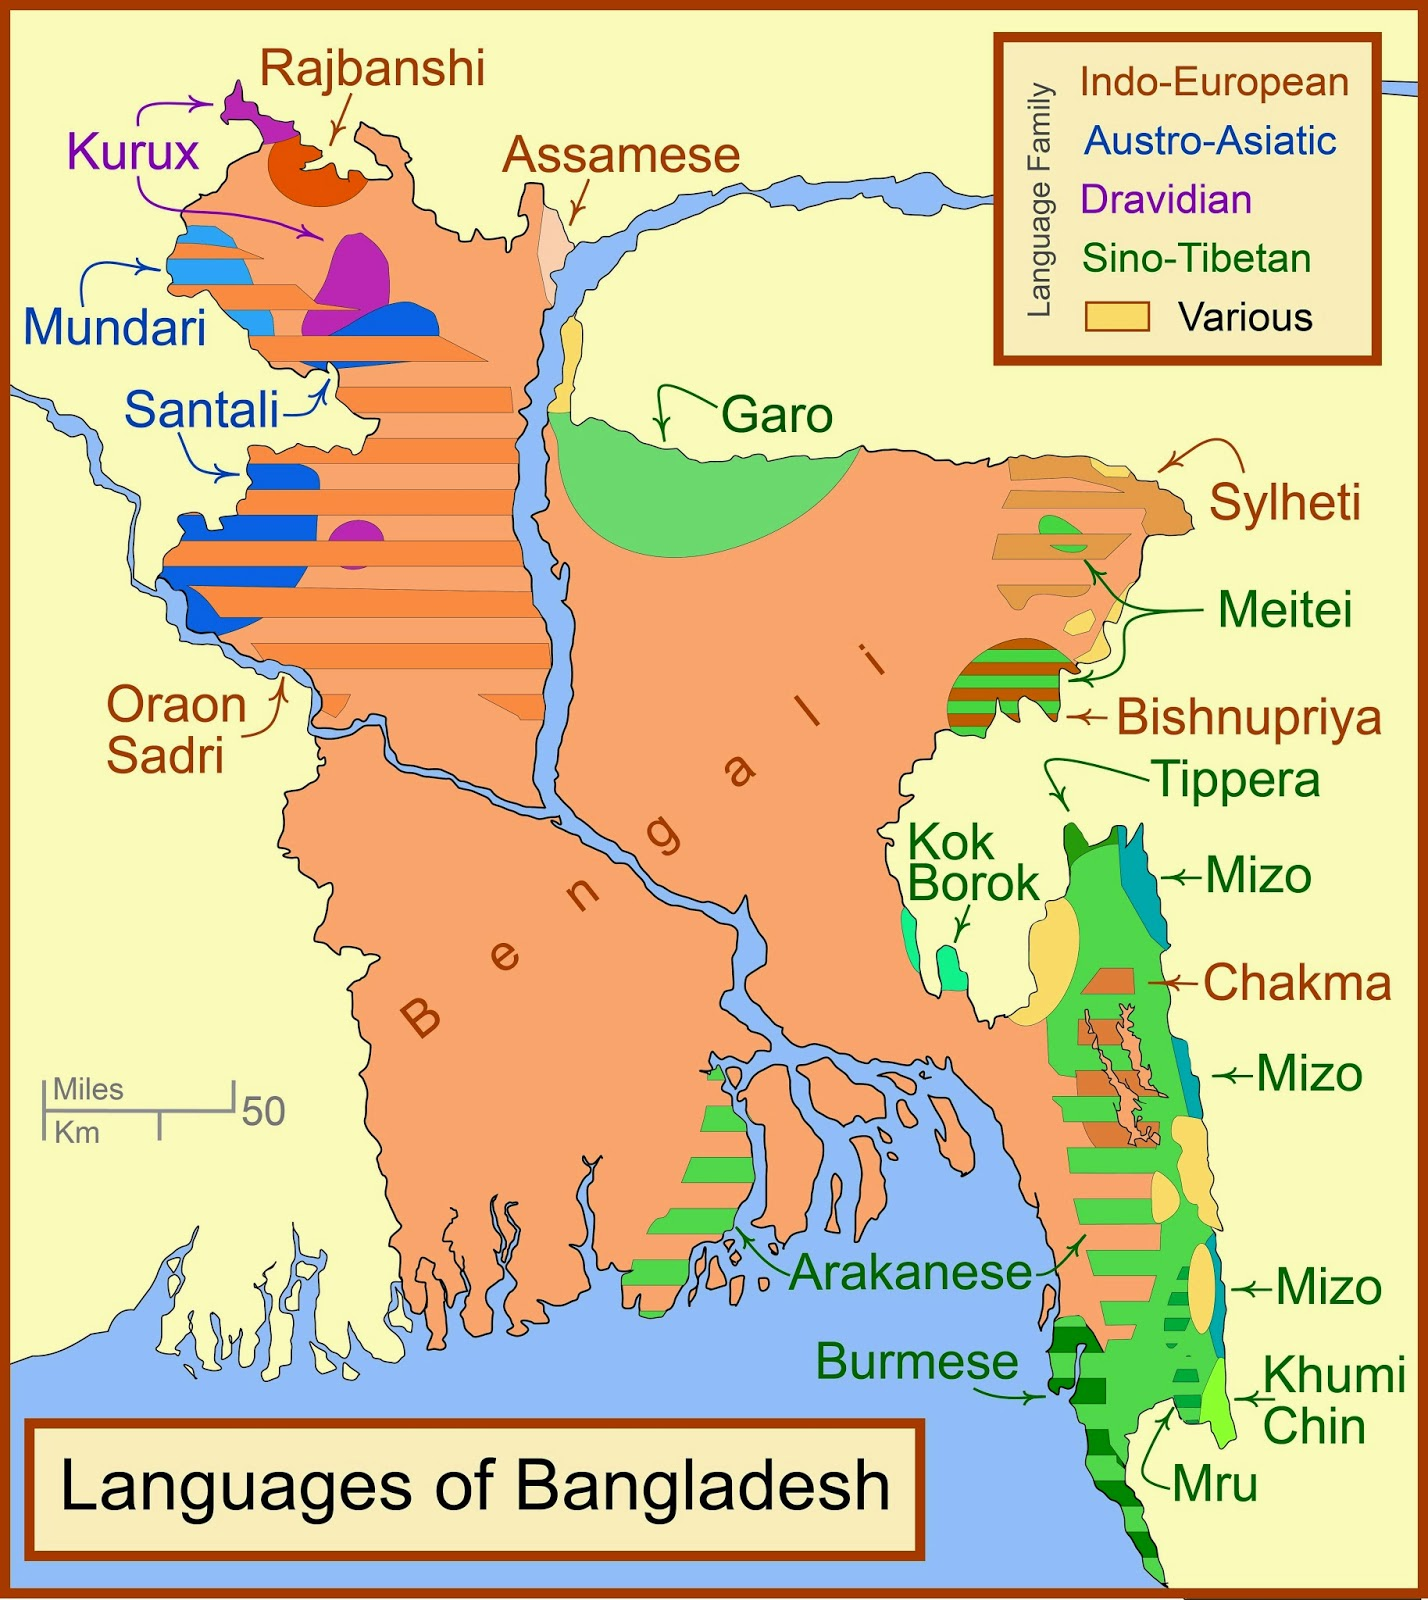 linguistic diversity in bangladesh source wikpedia commons